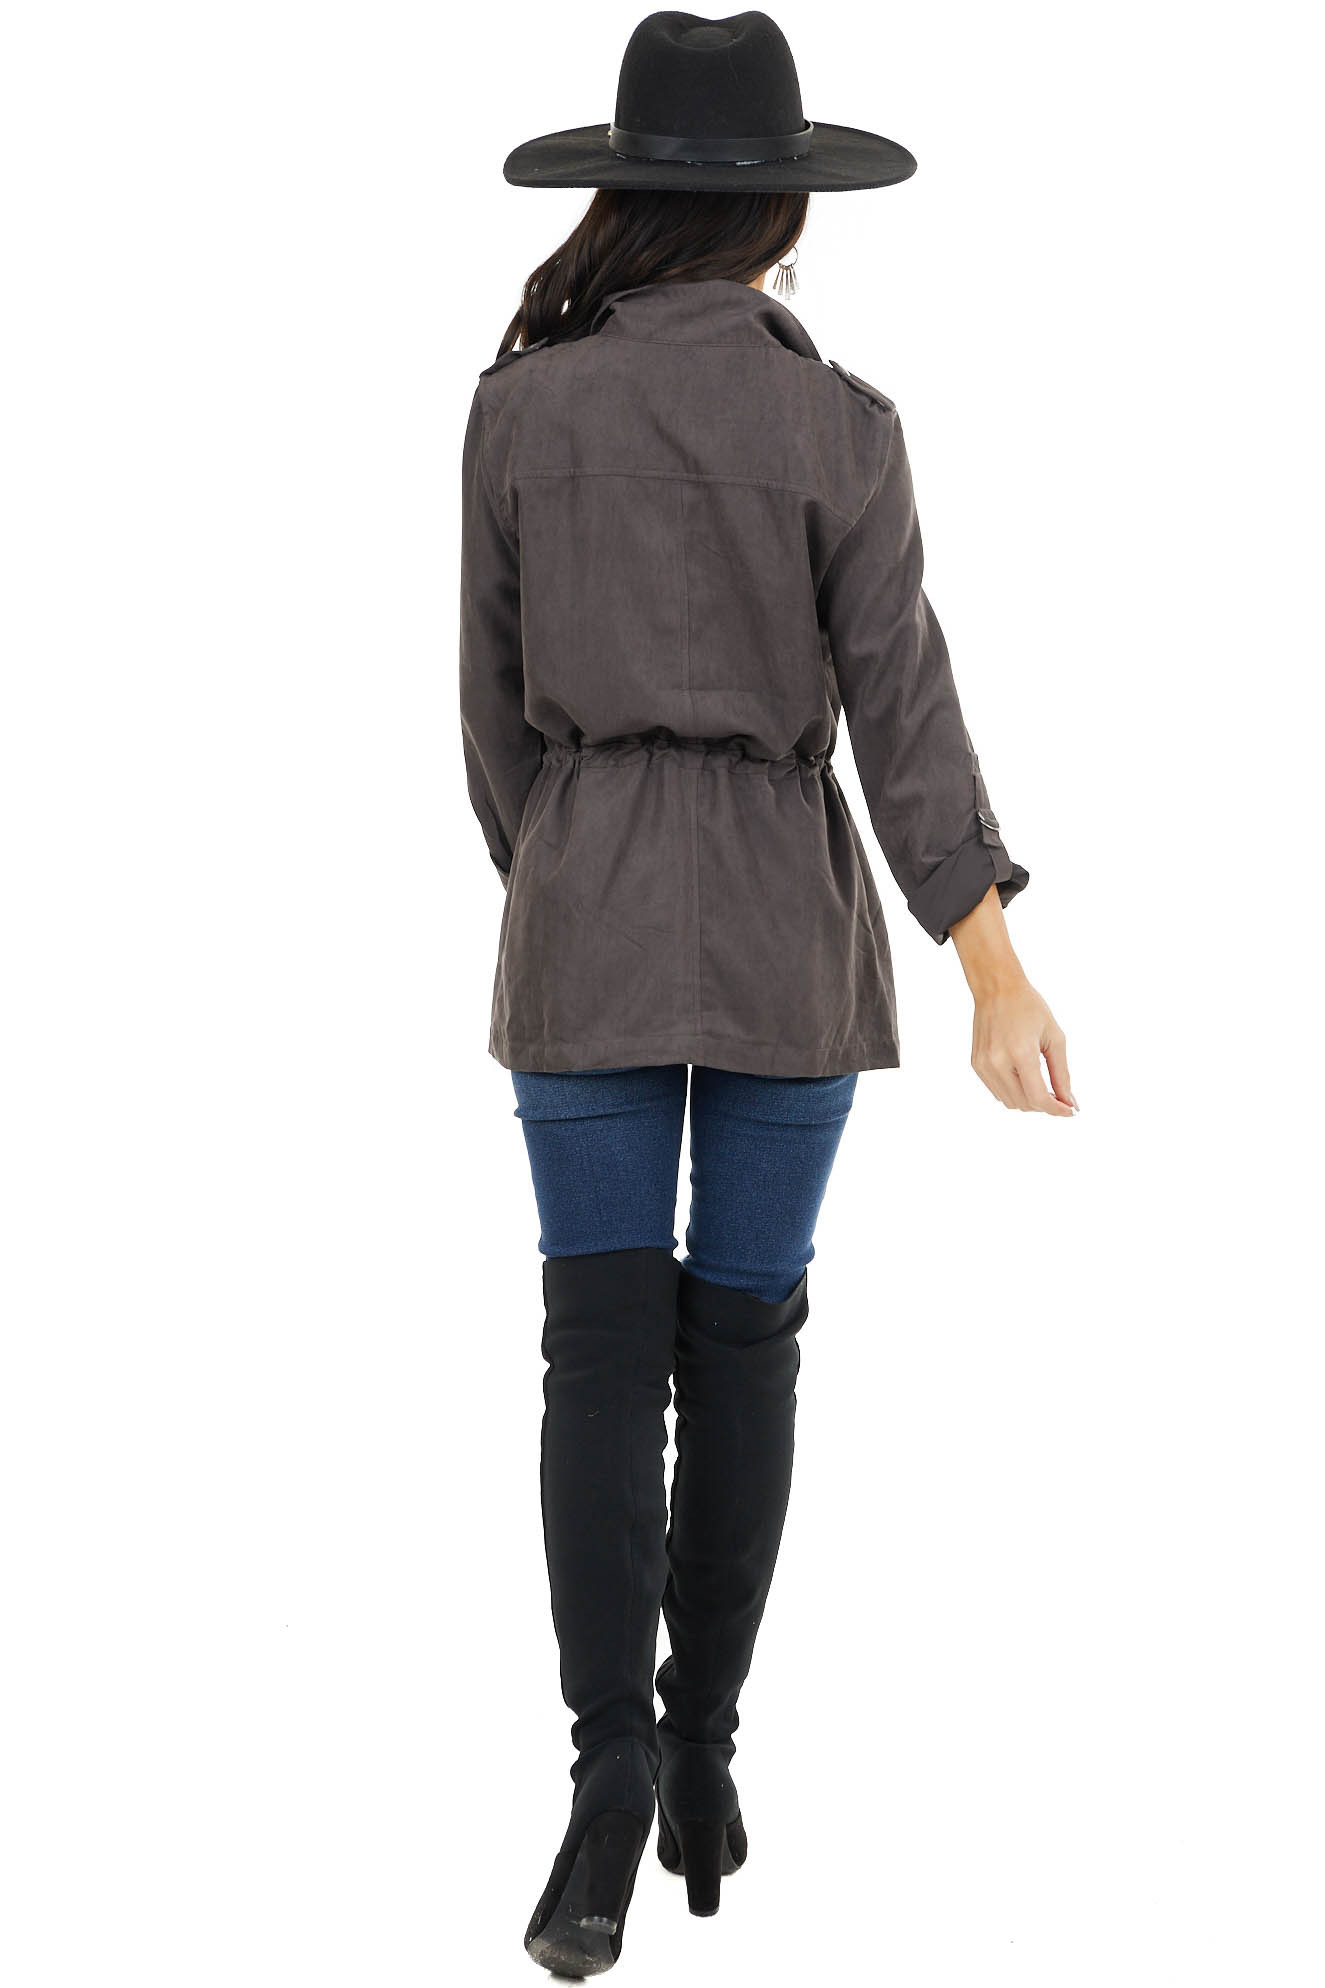 Cocoa Zip Up Jacket with Mock Neck and Drawstring Waist